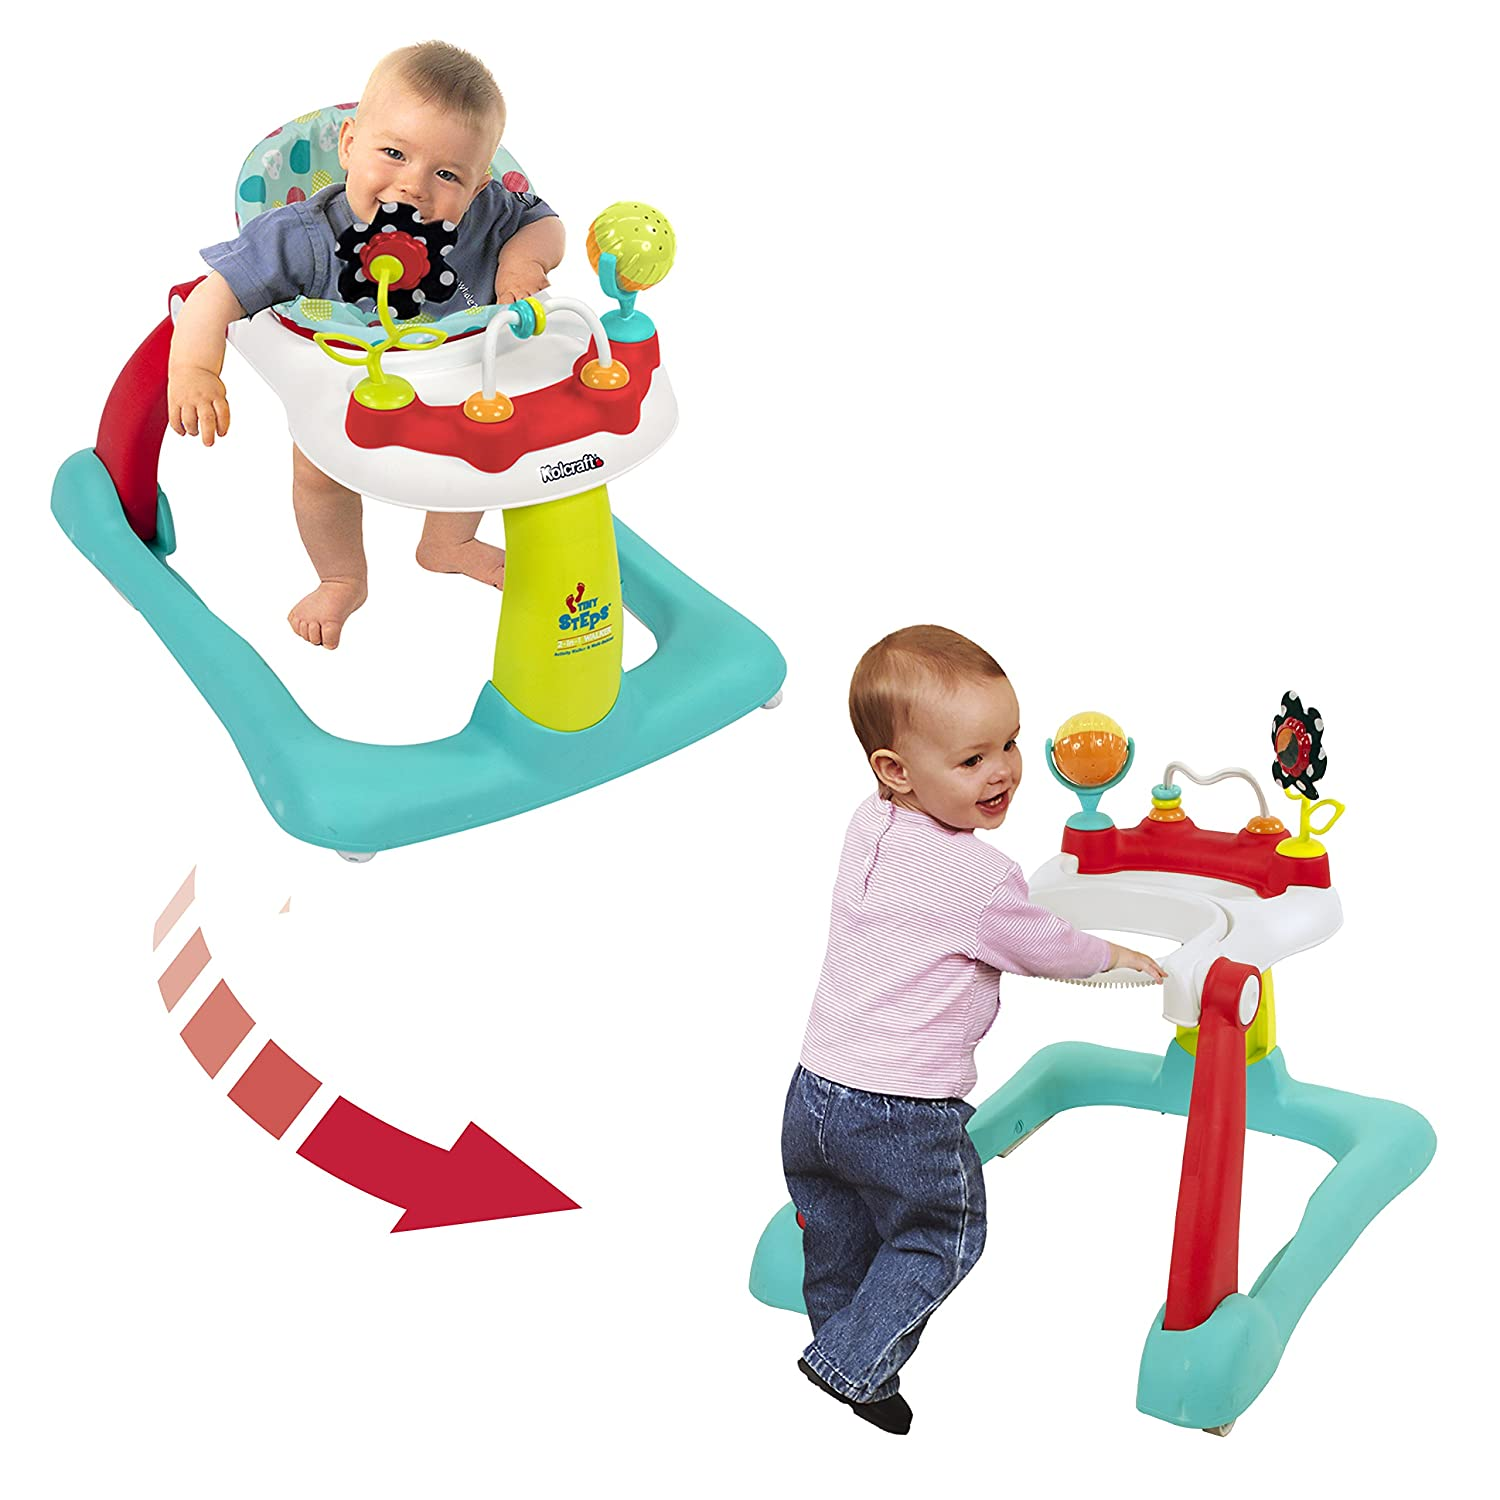 Kolcraft Tiny Steps 2-in-1 Infant & Baby Activity Walker